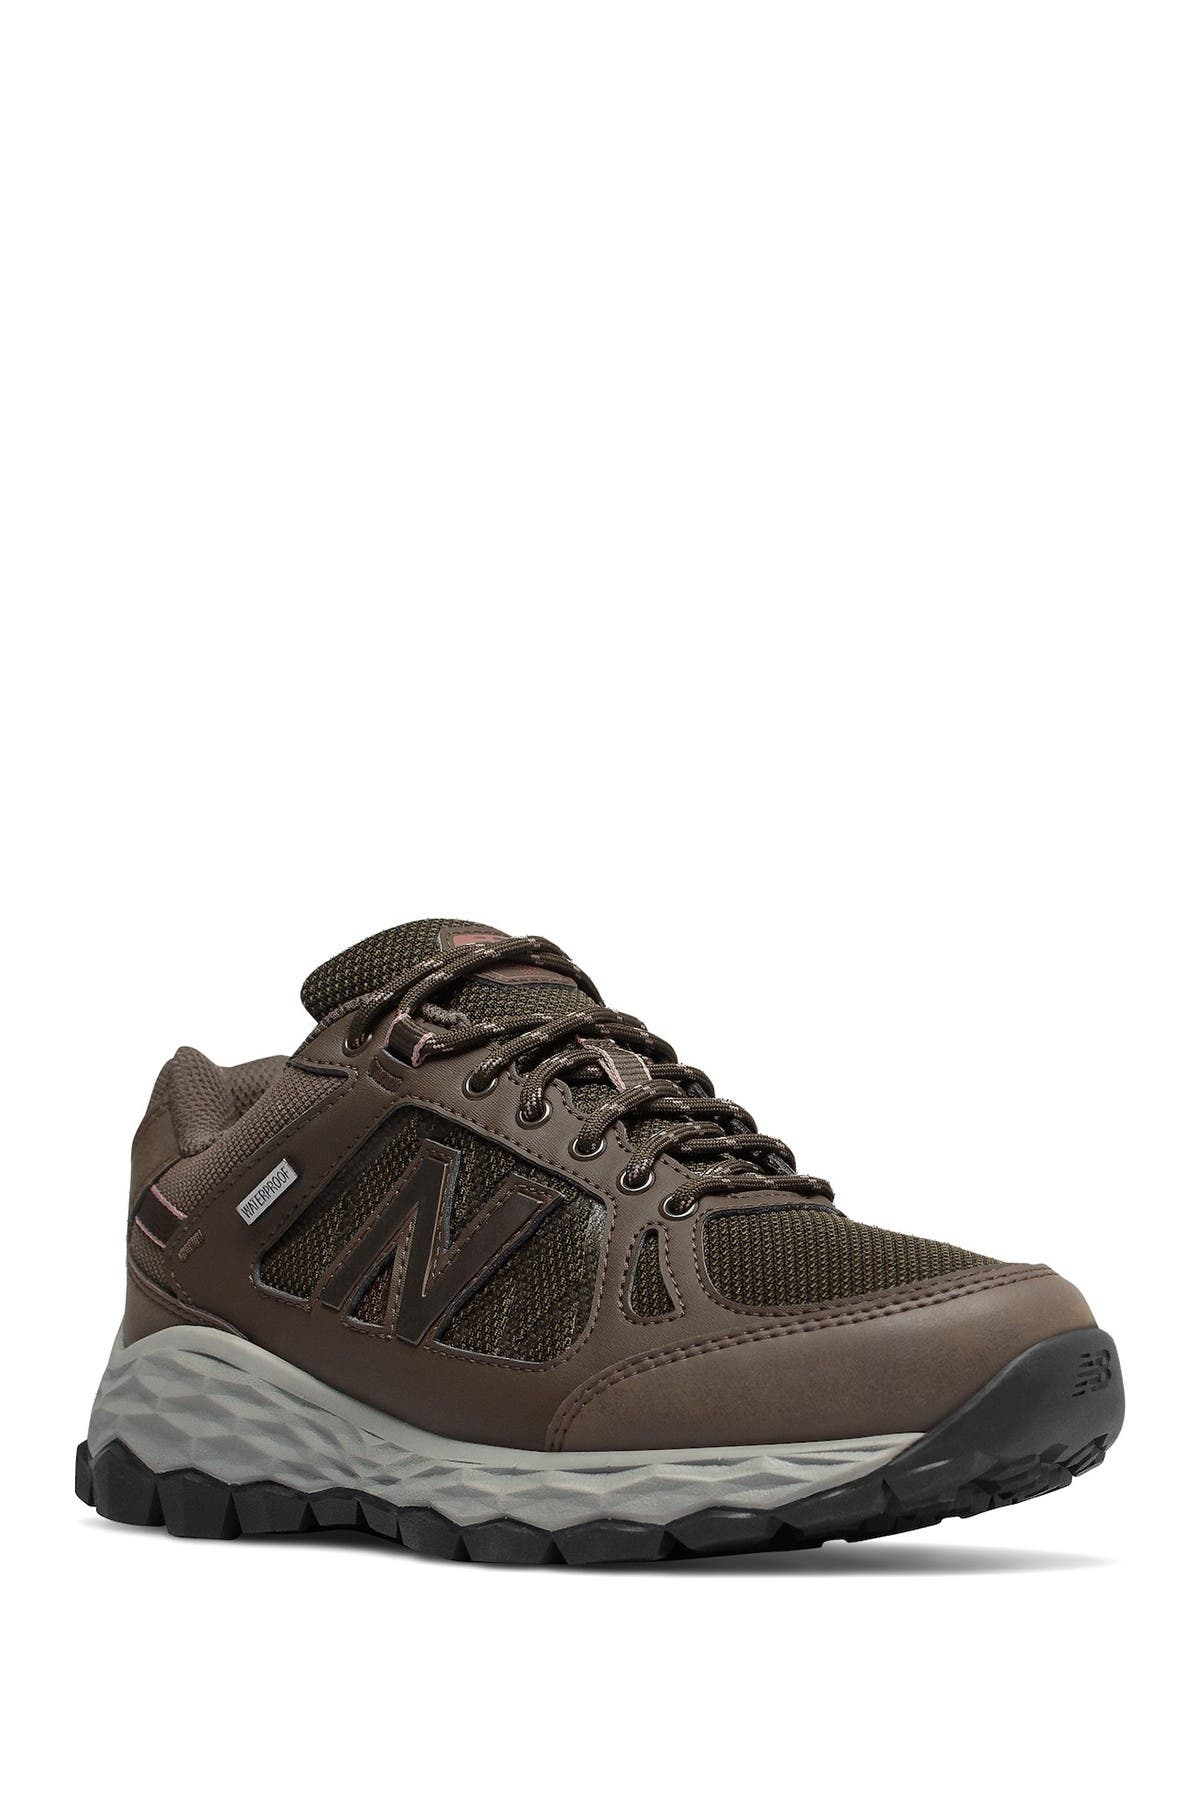 Image of New Balance 1350 Outdoor Walking Sneaker - Multiples Widths Available